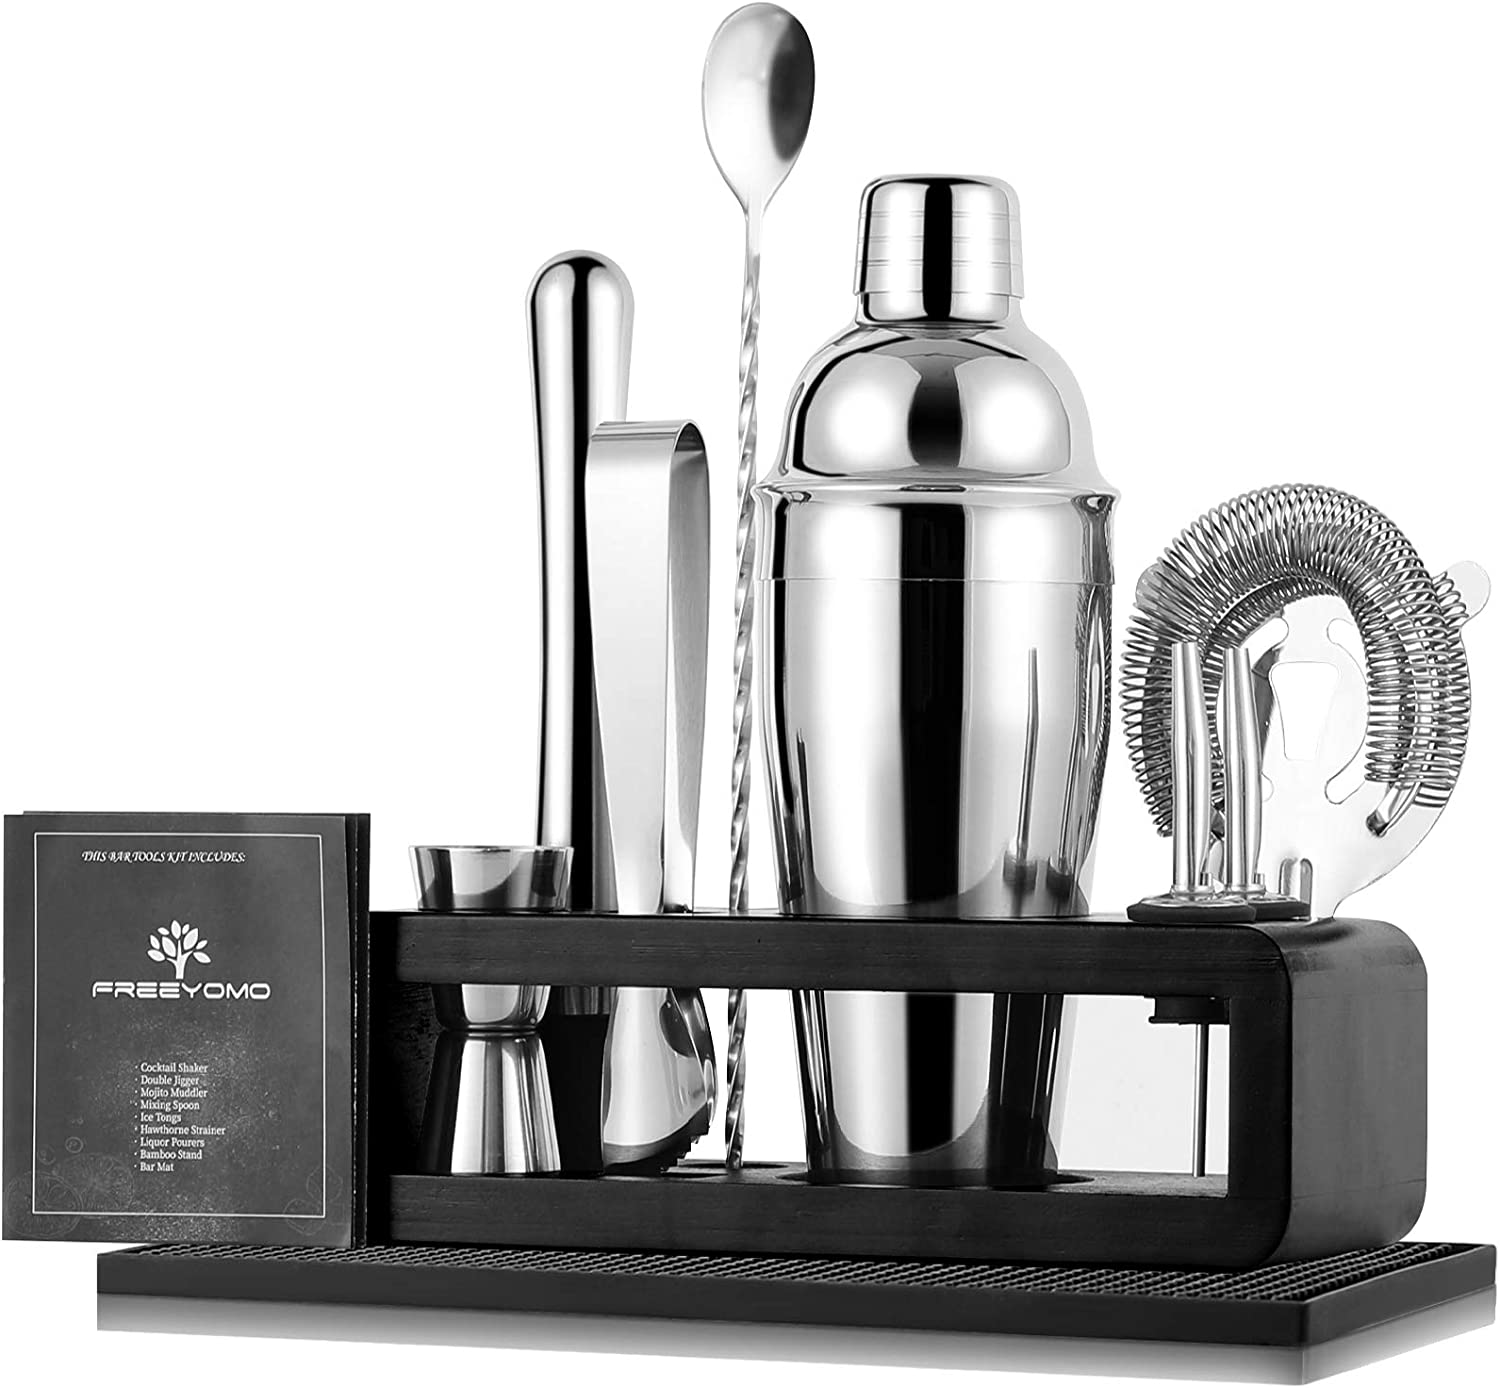 Bartender Kit with Stylish Bamboo Stand, 10 Piece Stainless Steel Bar Tools Cocktail Shaker Set, Premium Bar Mat, Martini Shaker Set, Perfect Bar Set for Home Bars, Parties and Drink Making